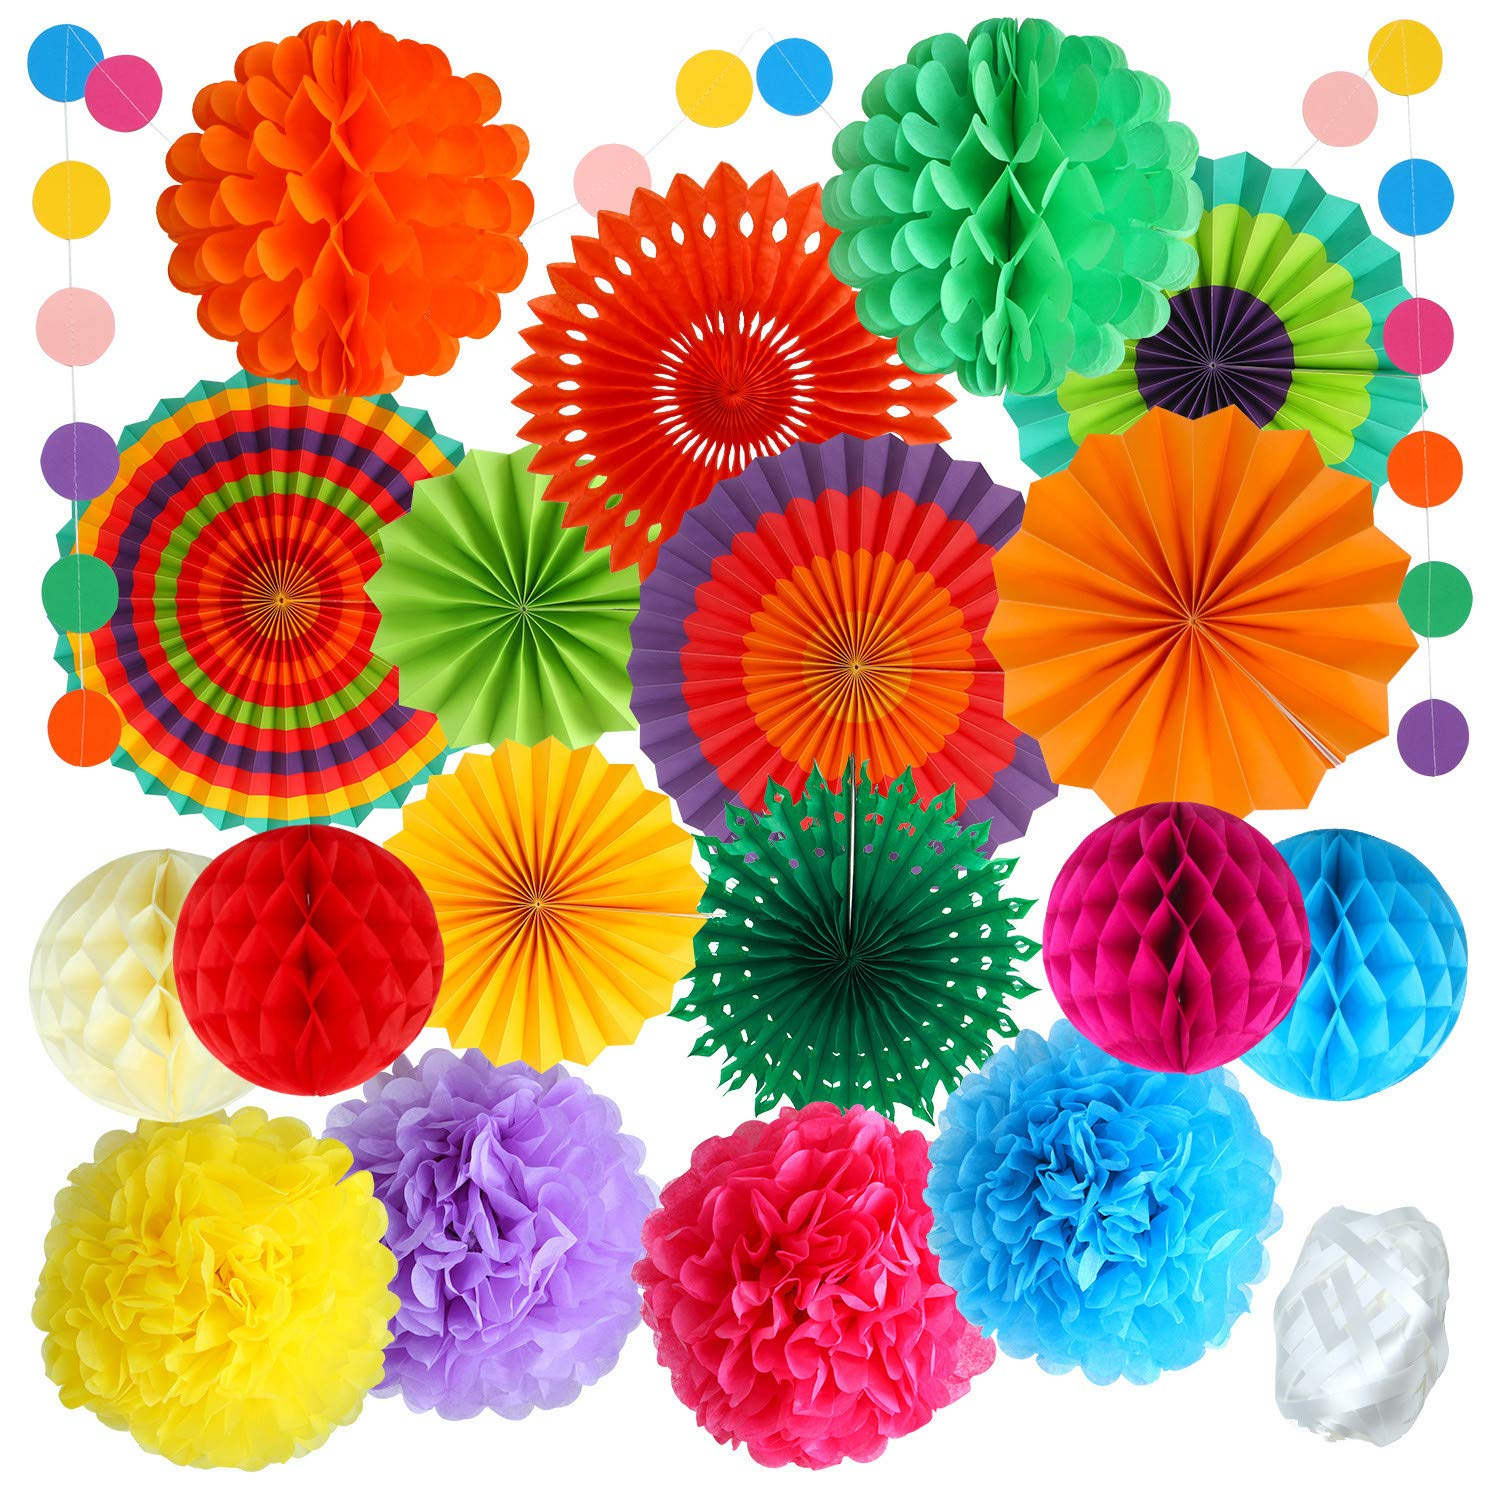 Aneco 20 Pieces Hanging Paper Fans Colorful Paper Pom Poms Flower Honeycomb Balls Rainbow Party Decorations Birthdays Festivals Carnivals Graduation Christmas